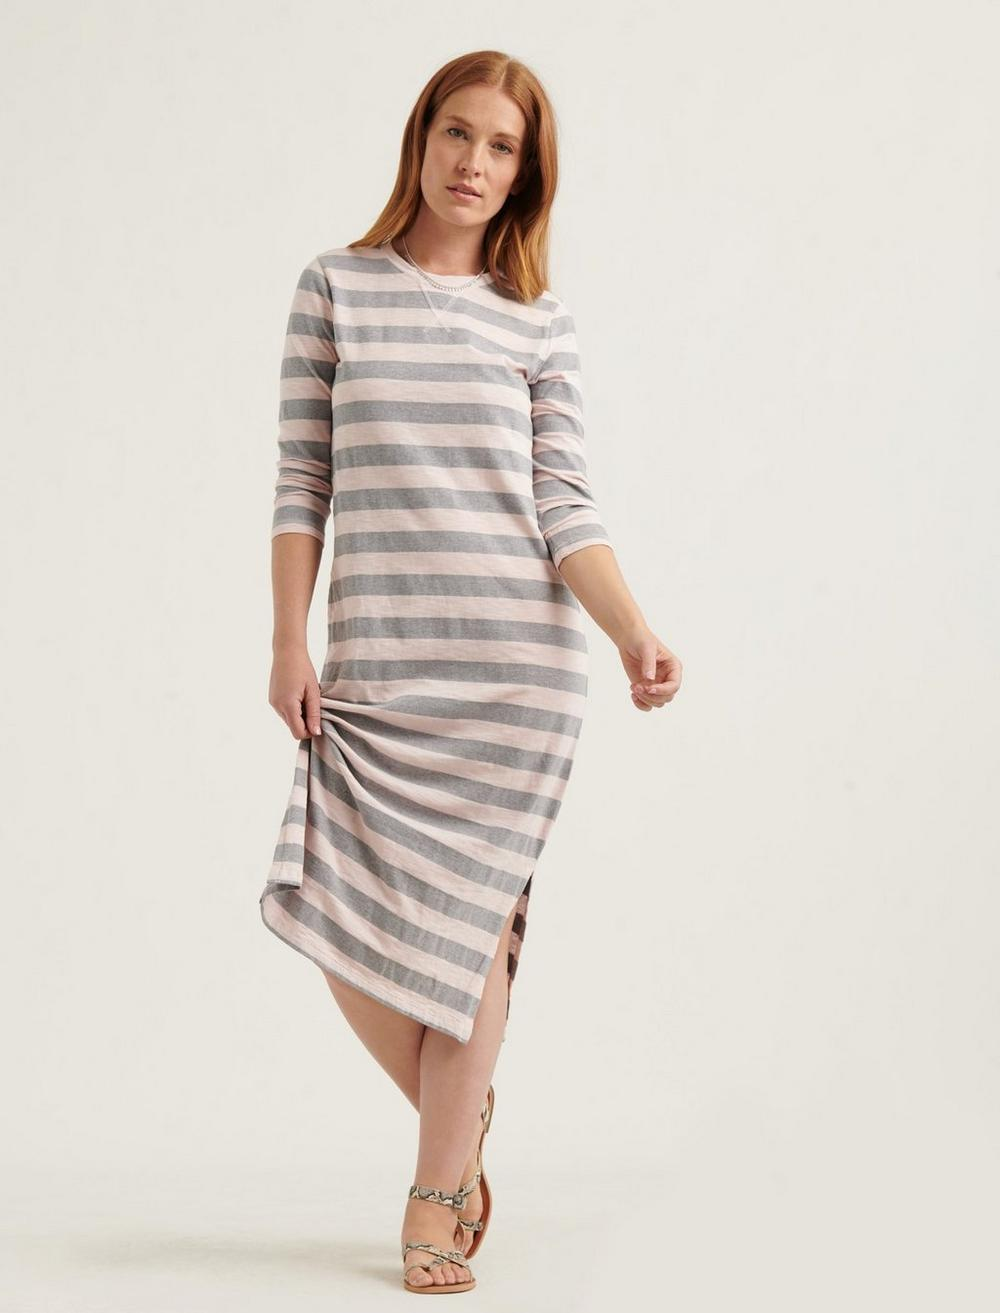 GARMENT DYED RUGBY DRESS, image 4